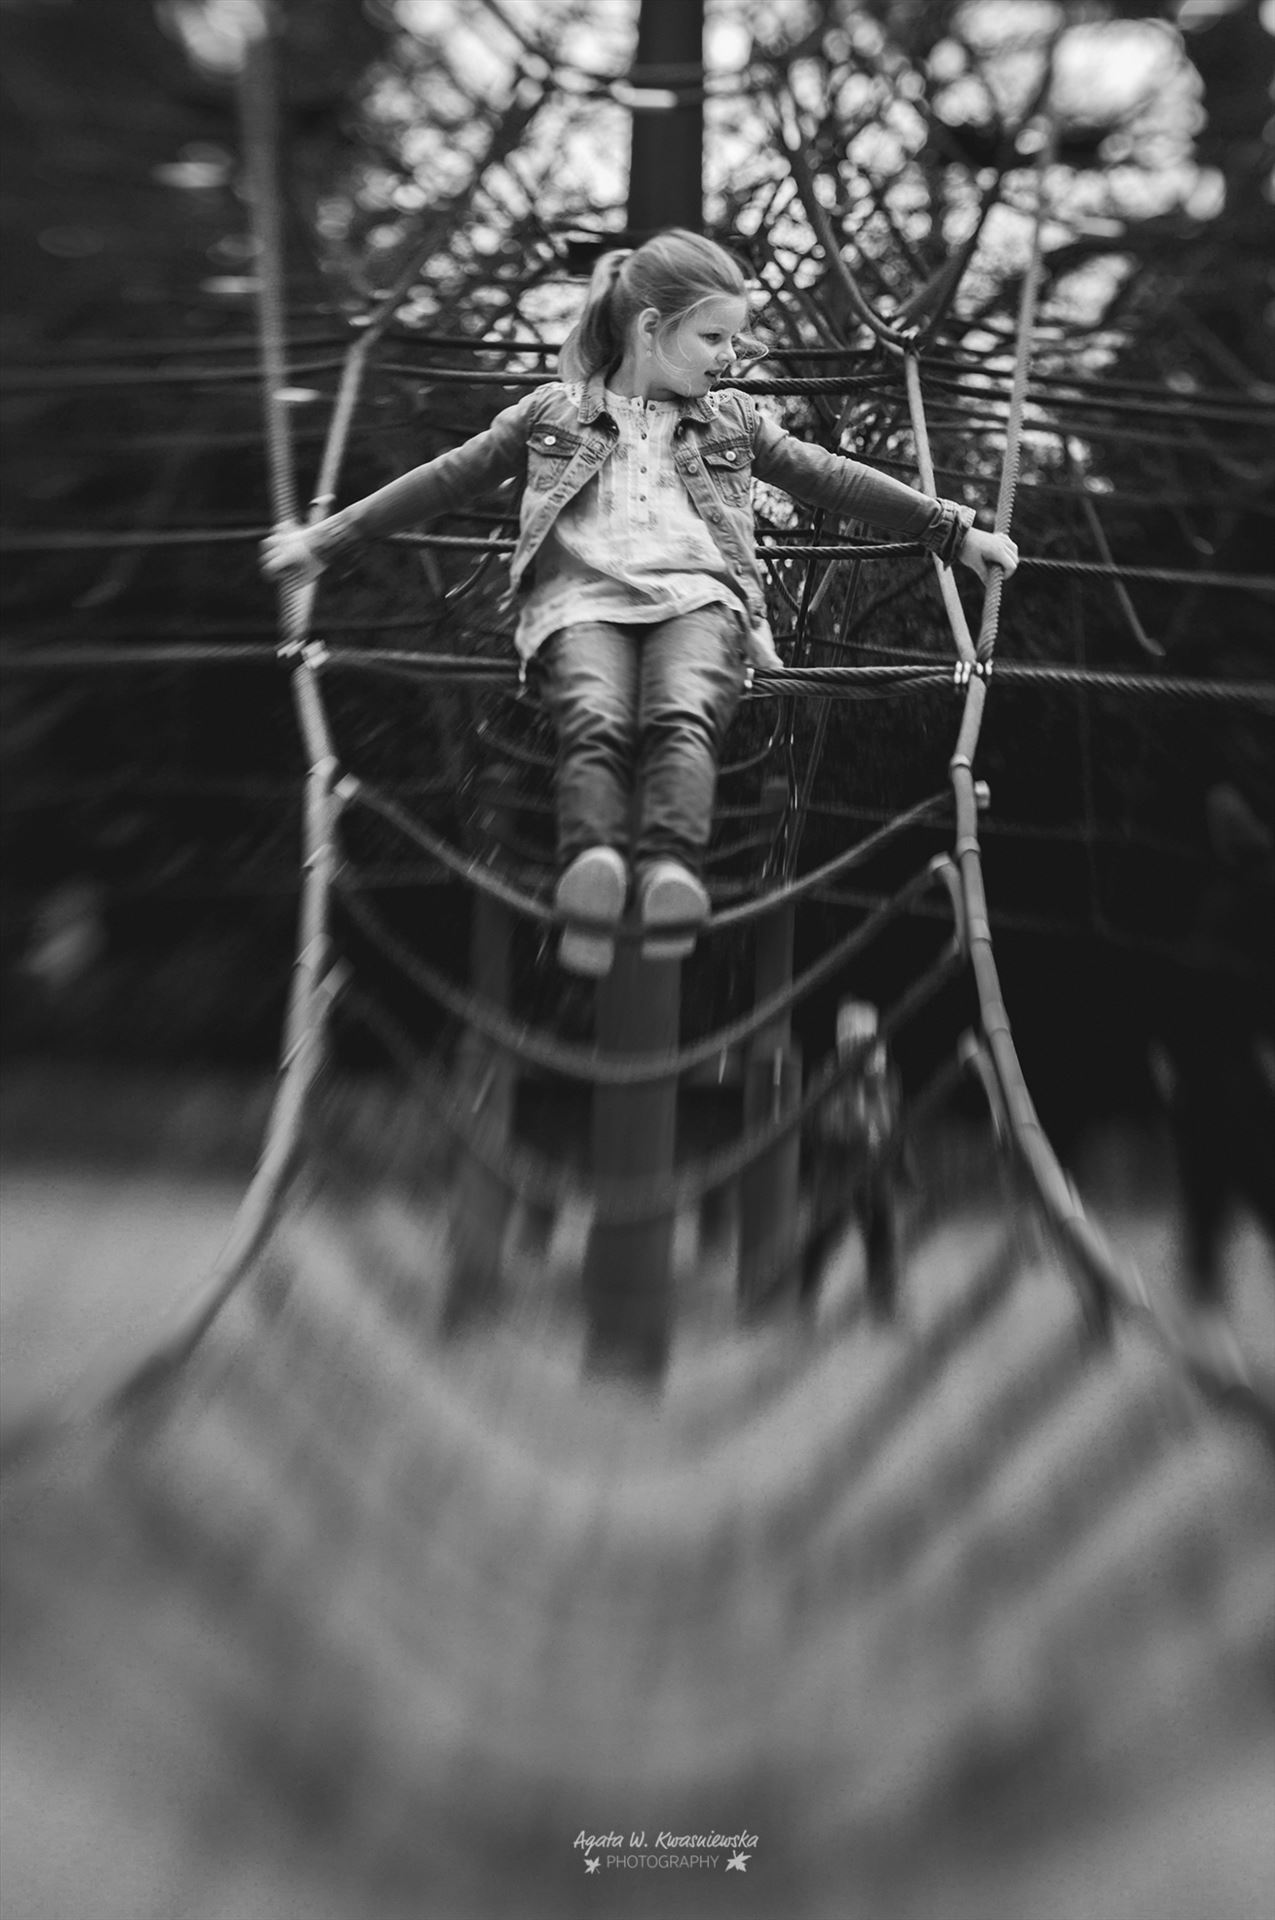 Symmetry -  by Agata W. Kwasniewska Photography